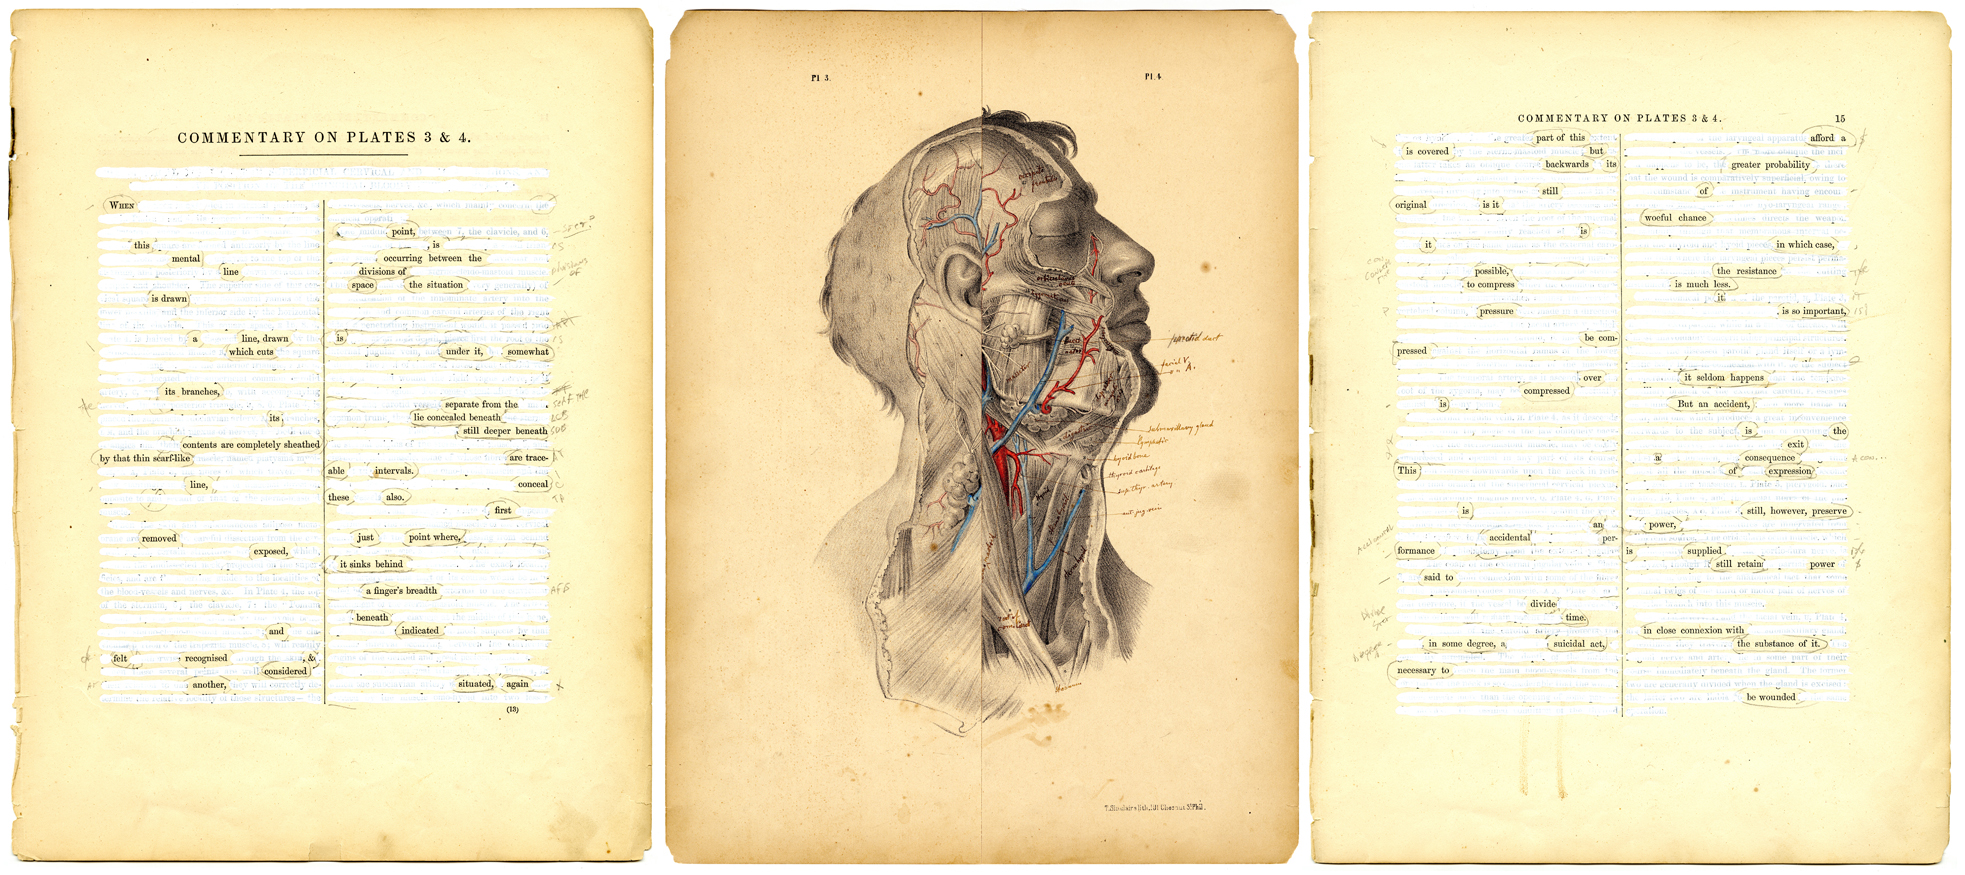 Surgical Pages, Plates 3 and 4